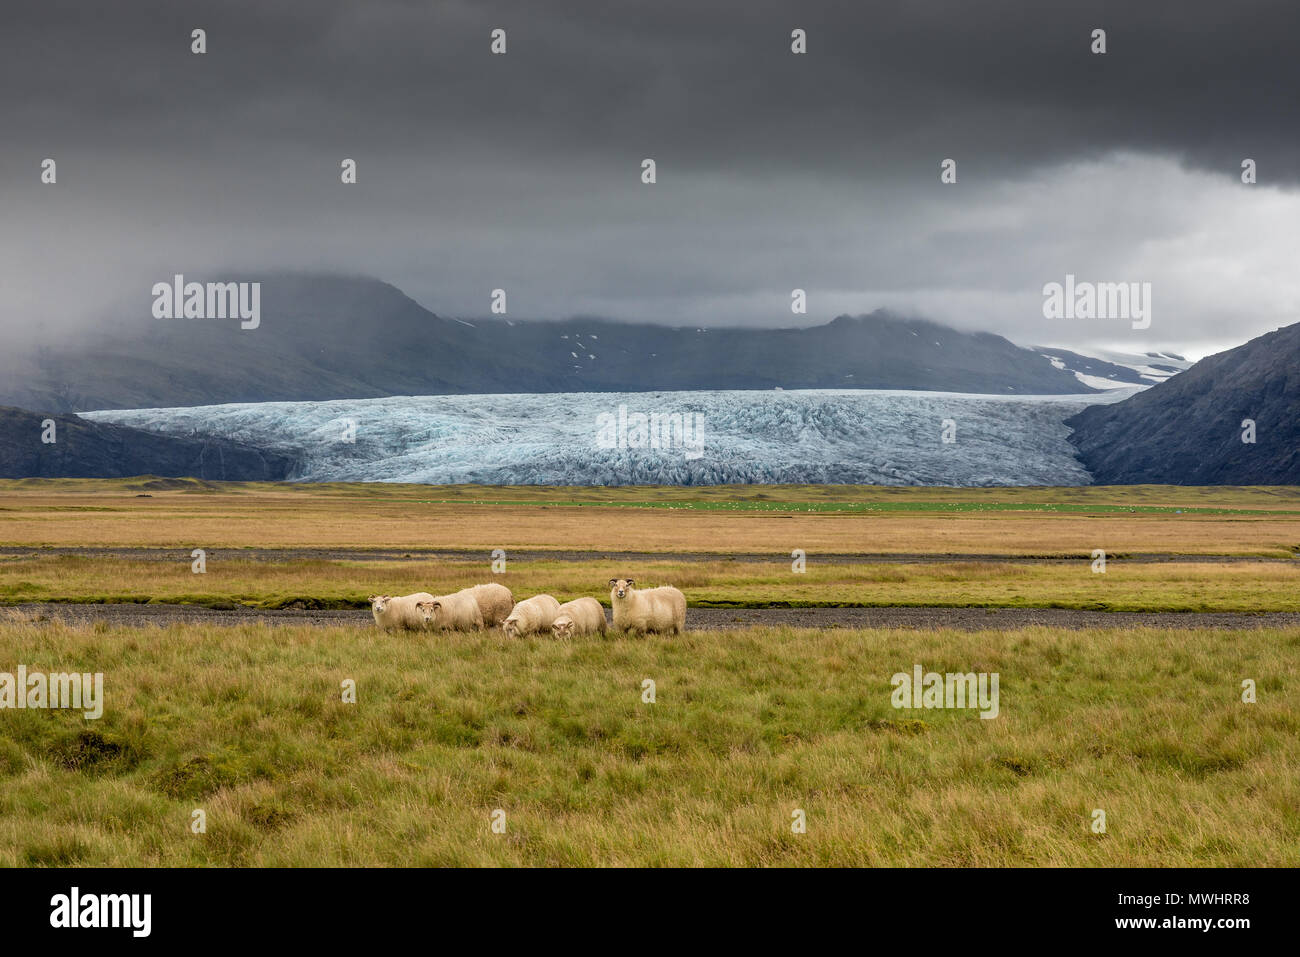 on the southern coast of Iceland - Stock Image